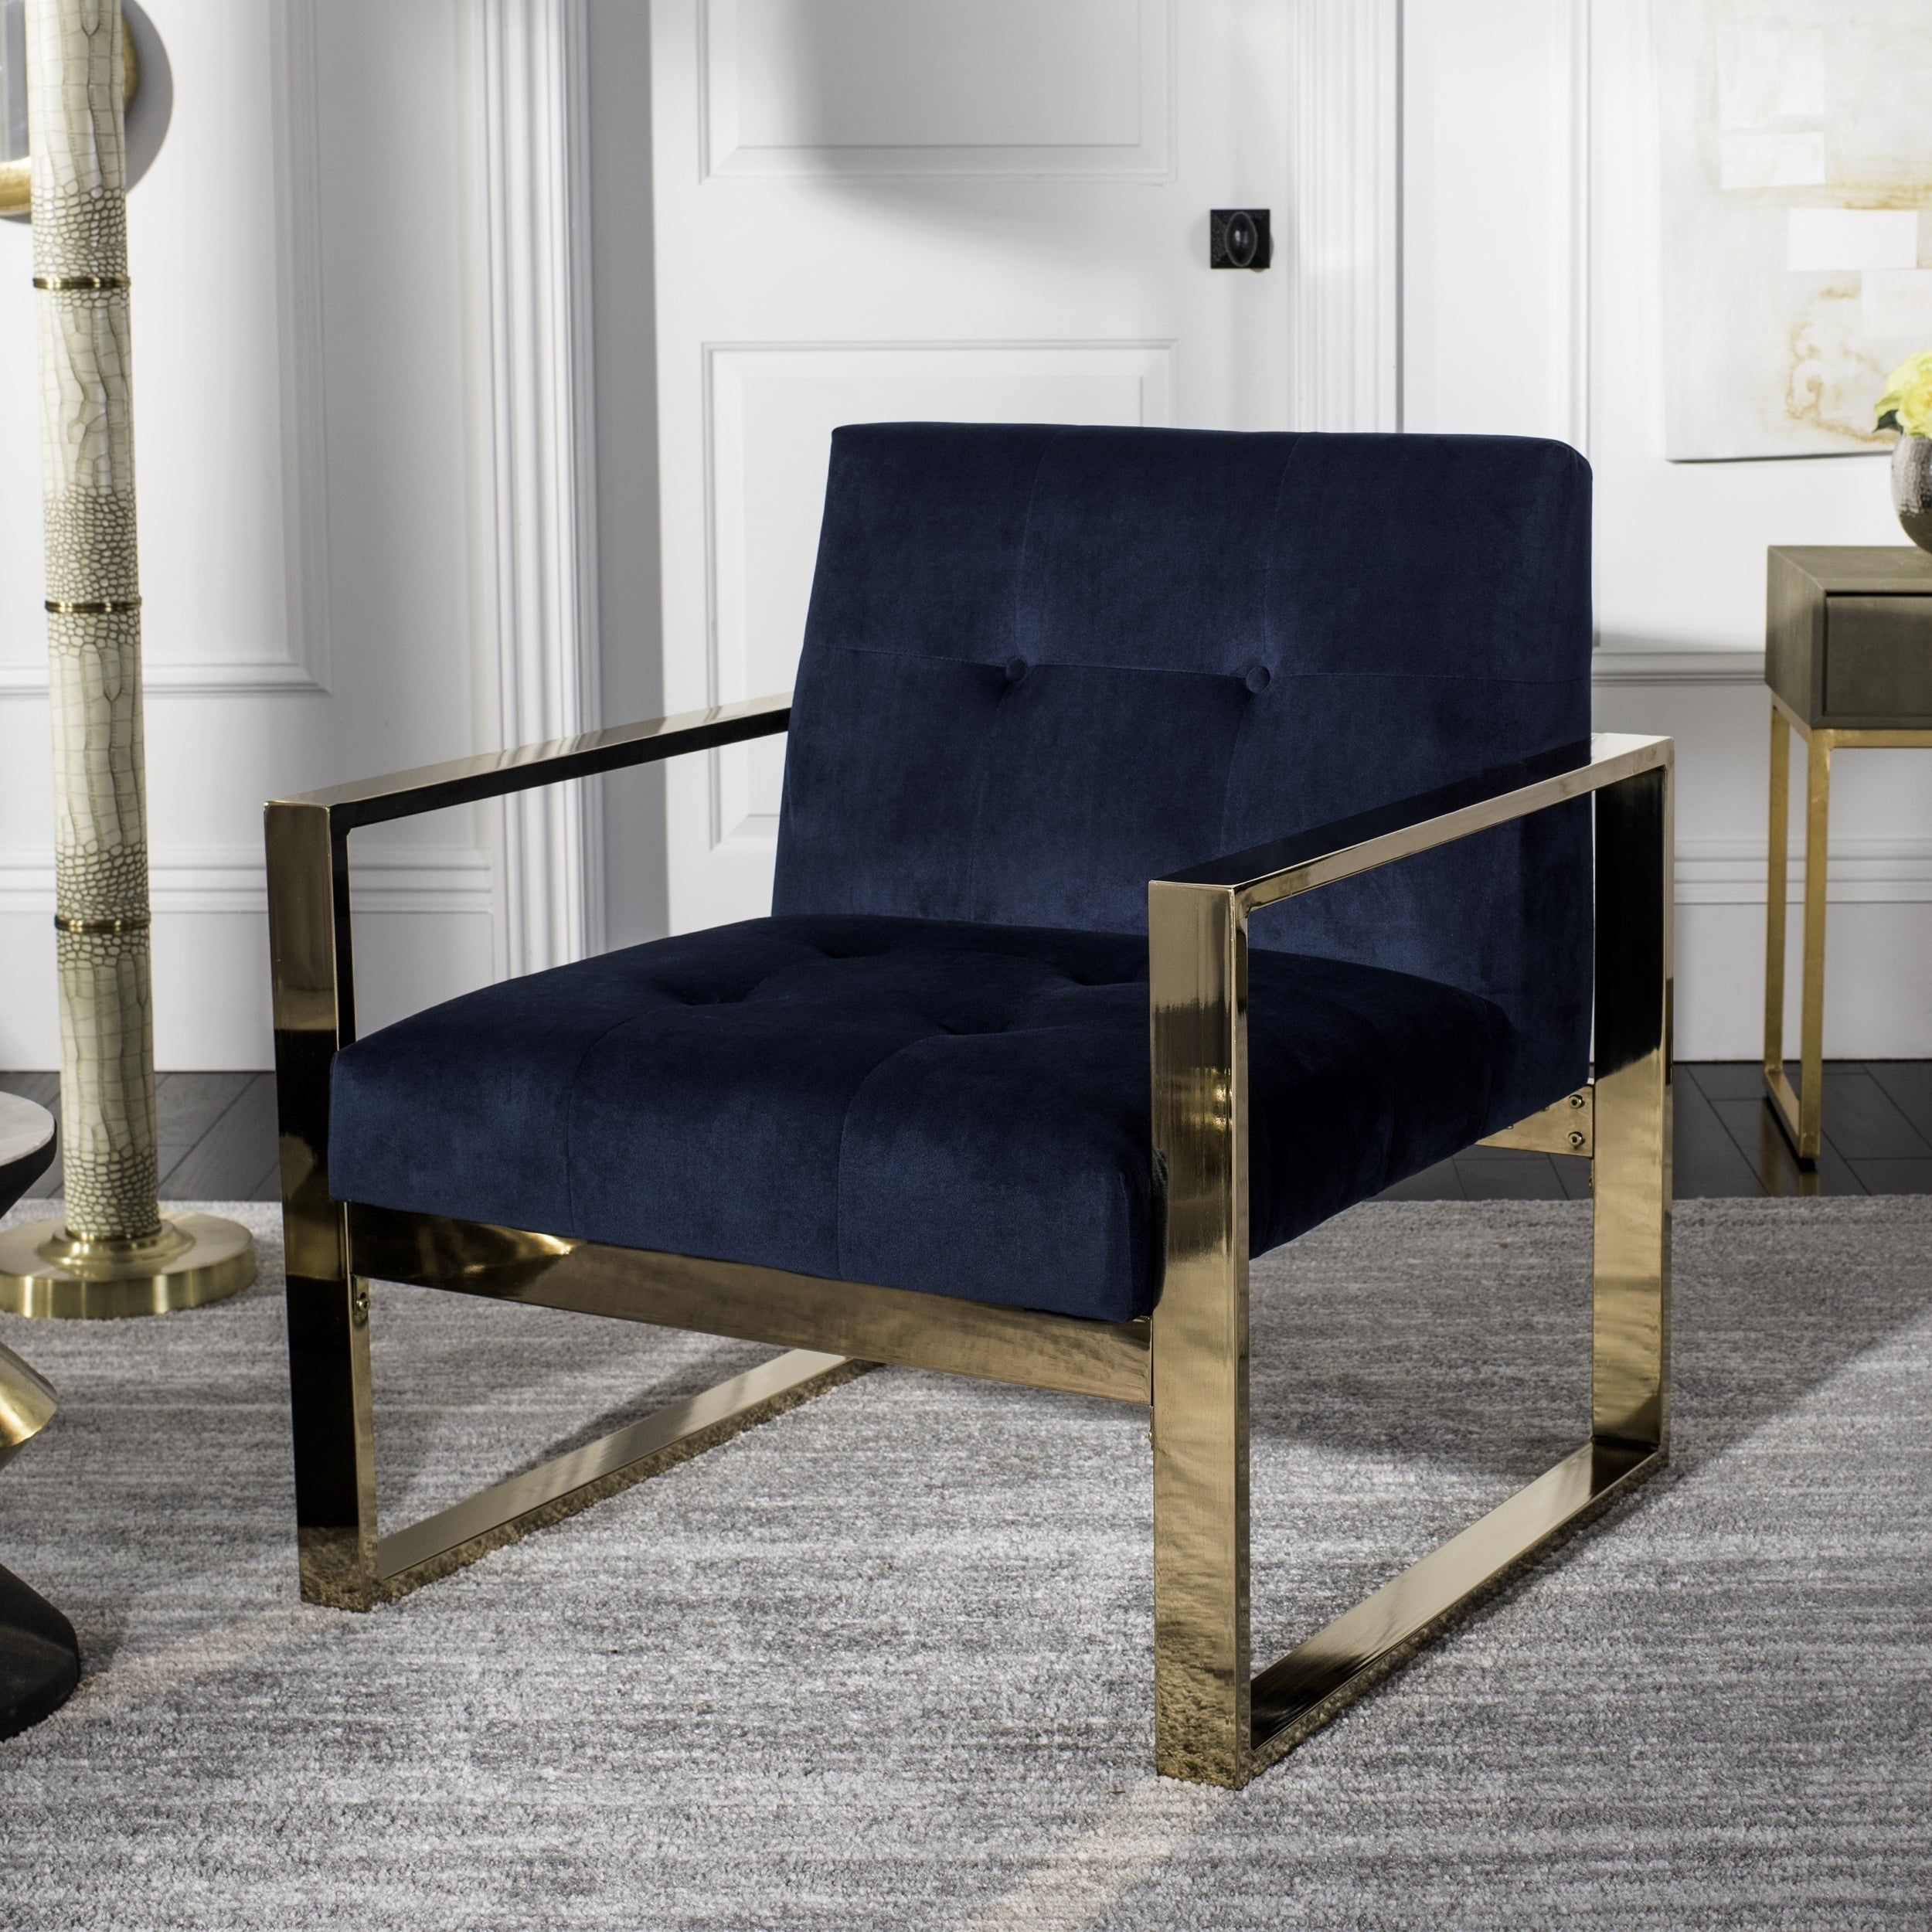 Shop safavieh vasco glam navy accent chair free shipping today overstock com 19478868